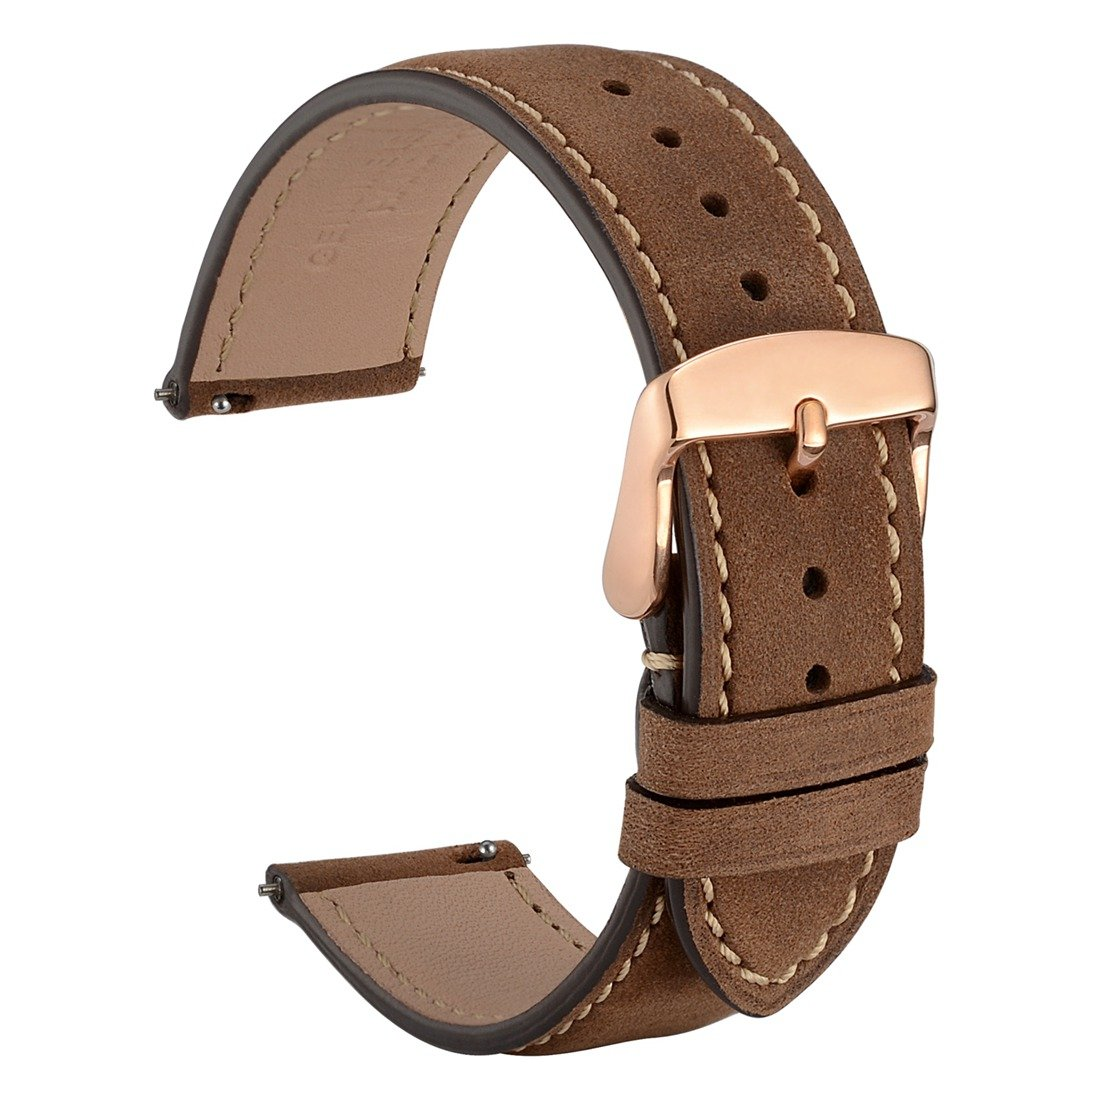 WOCCI 18mm Suede Vintage Leather Watch Band with Rose Gold Buckle, Quick Release Strap (Dark Brown with Contrasting Seam) by WOCCI